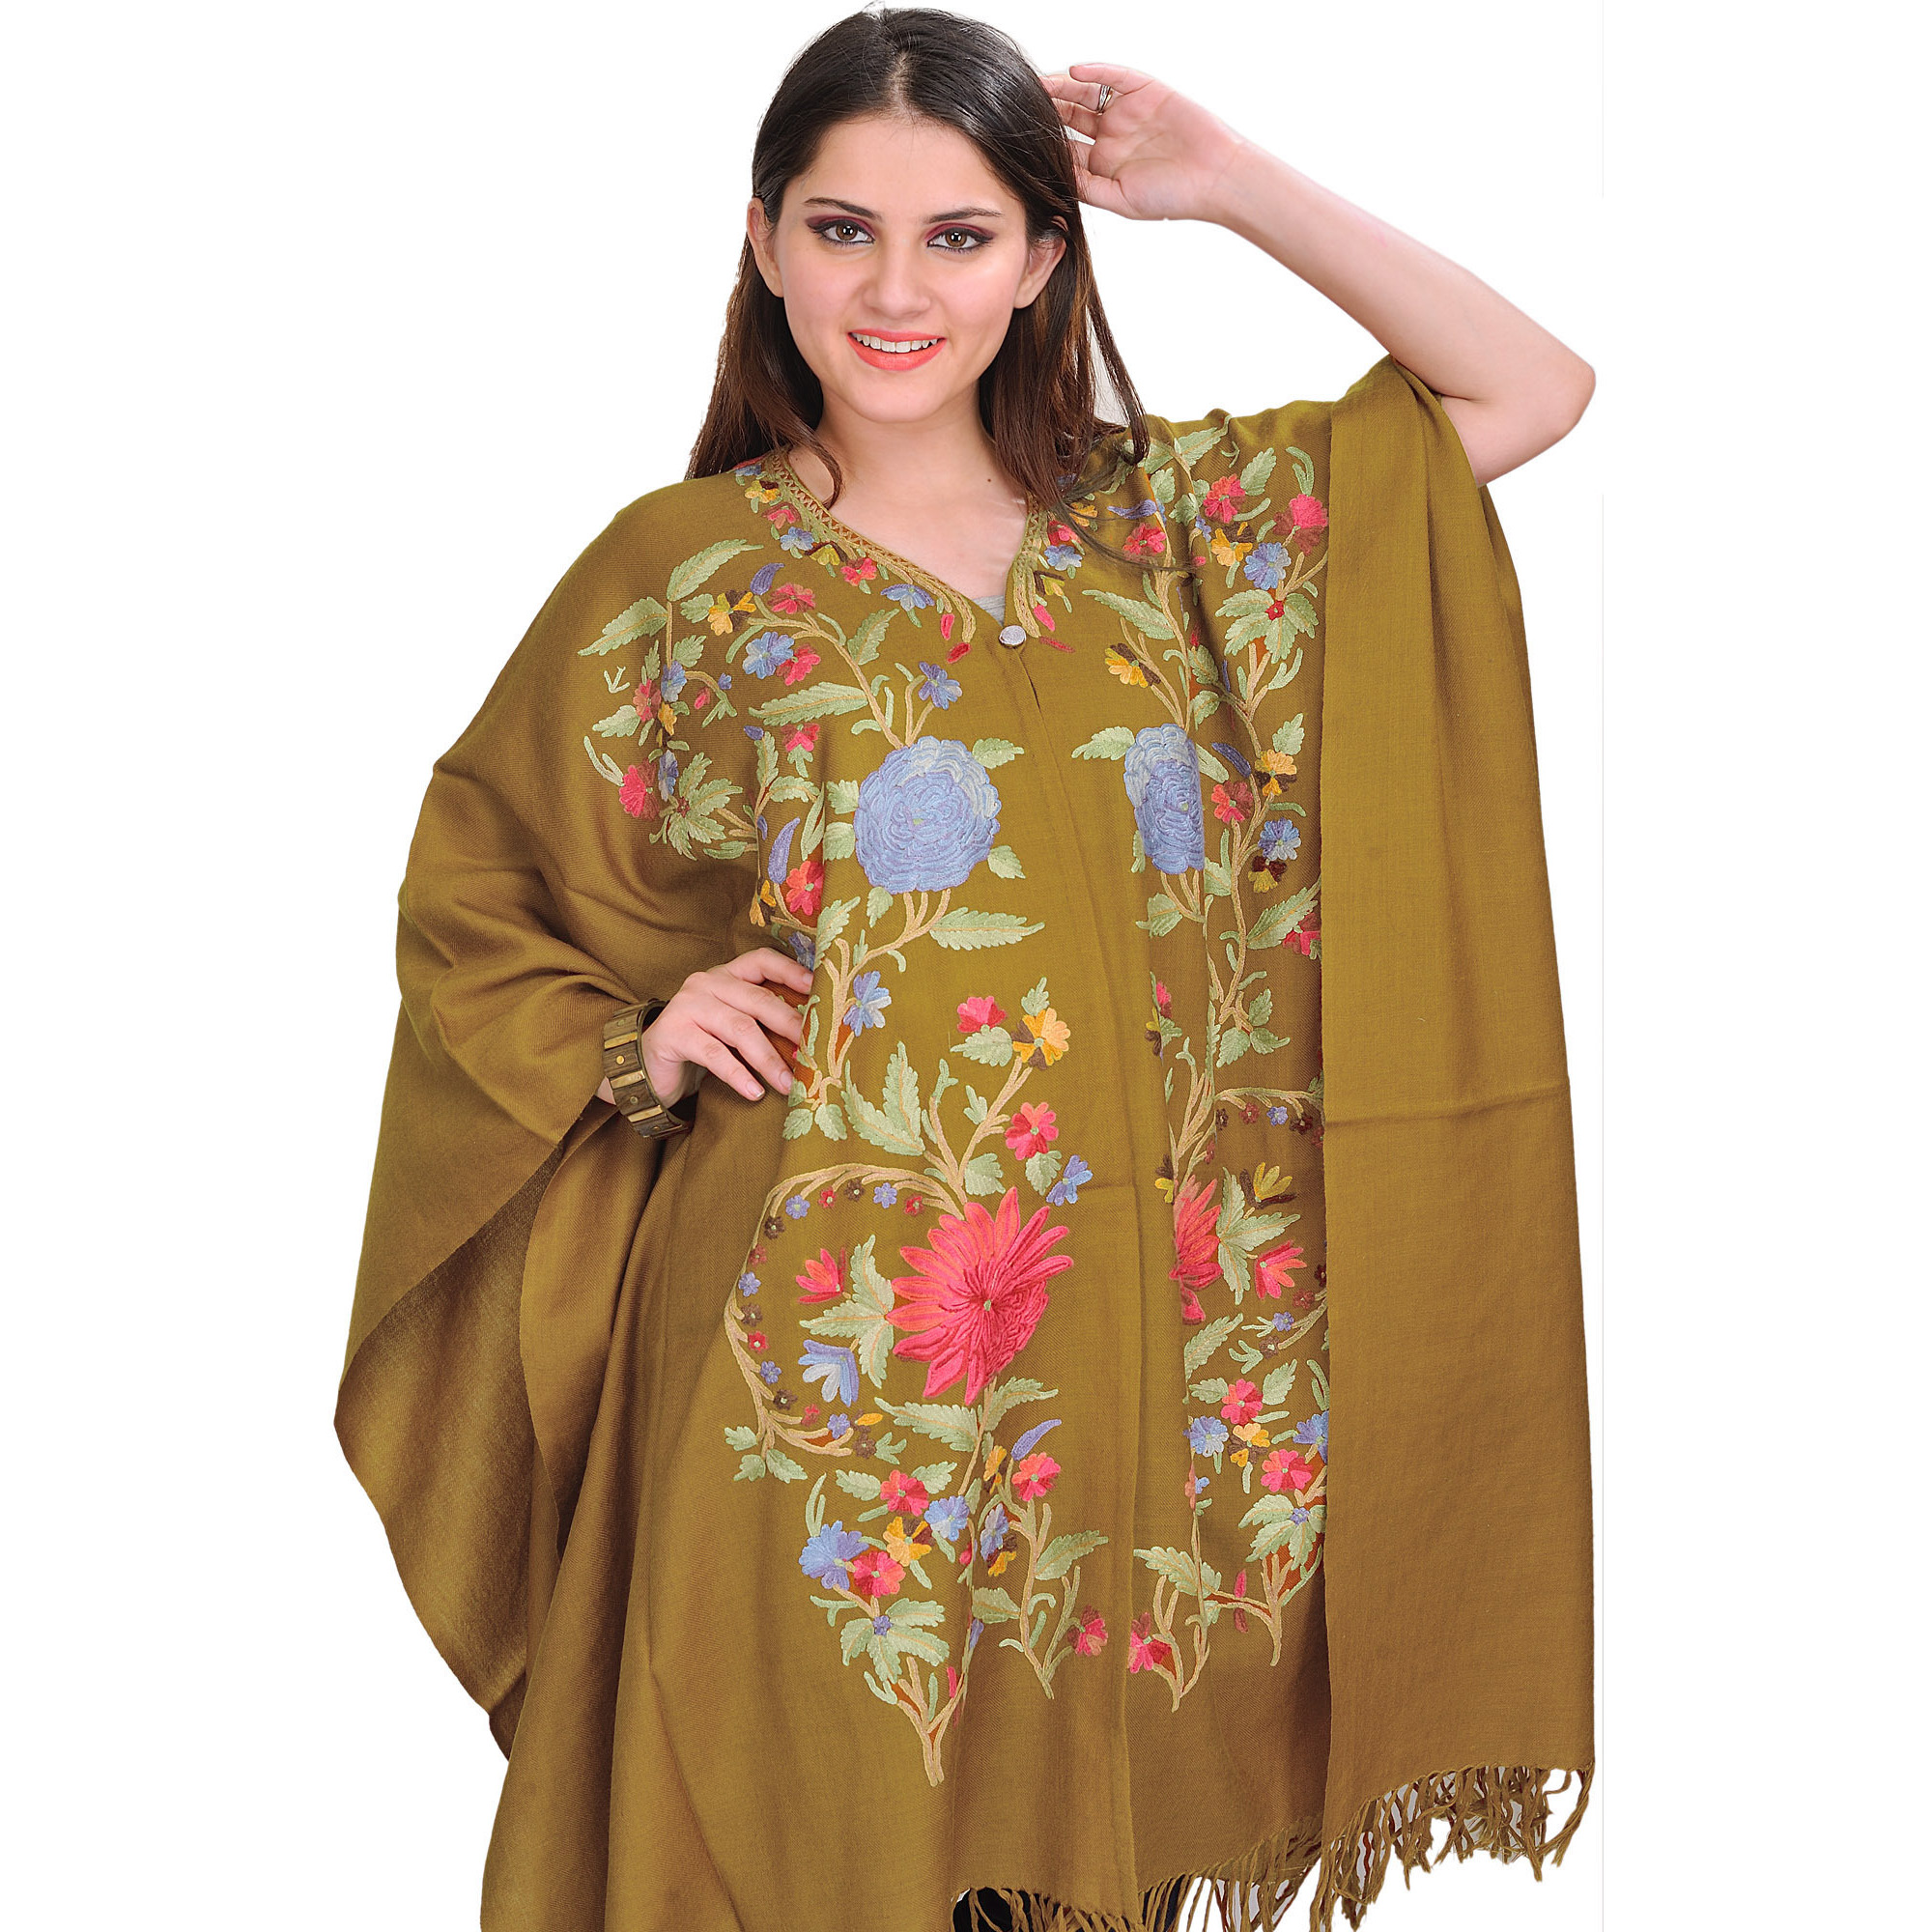 Tapenade-Green Cape from Kashmir with Ari Embroidered Flowers by Hand